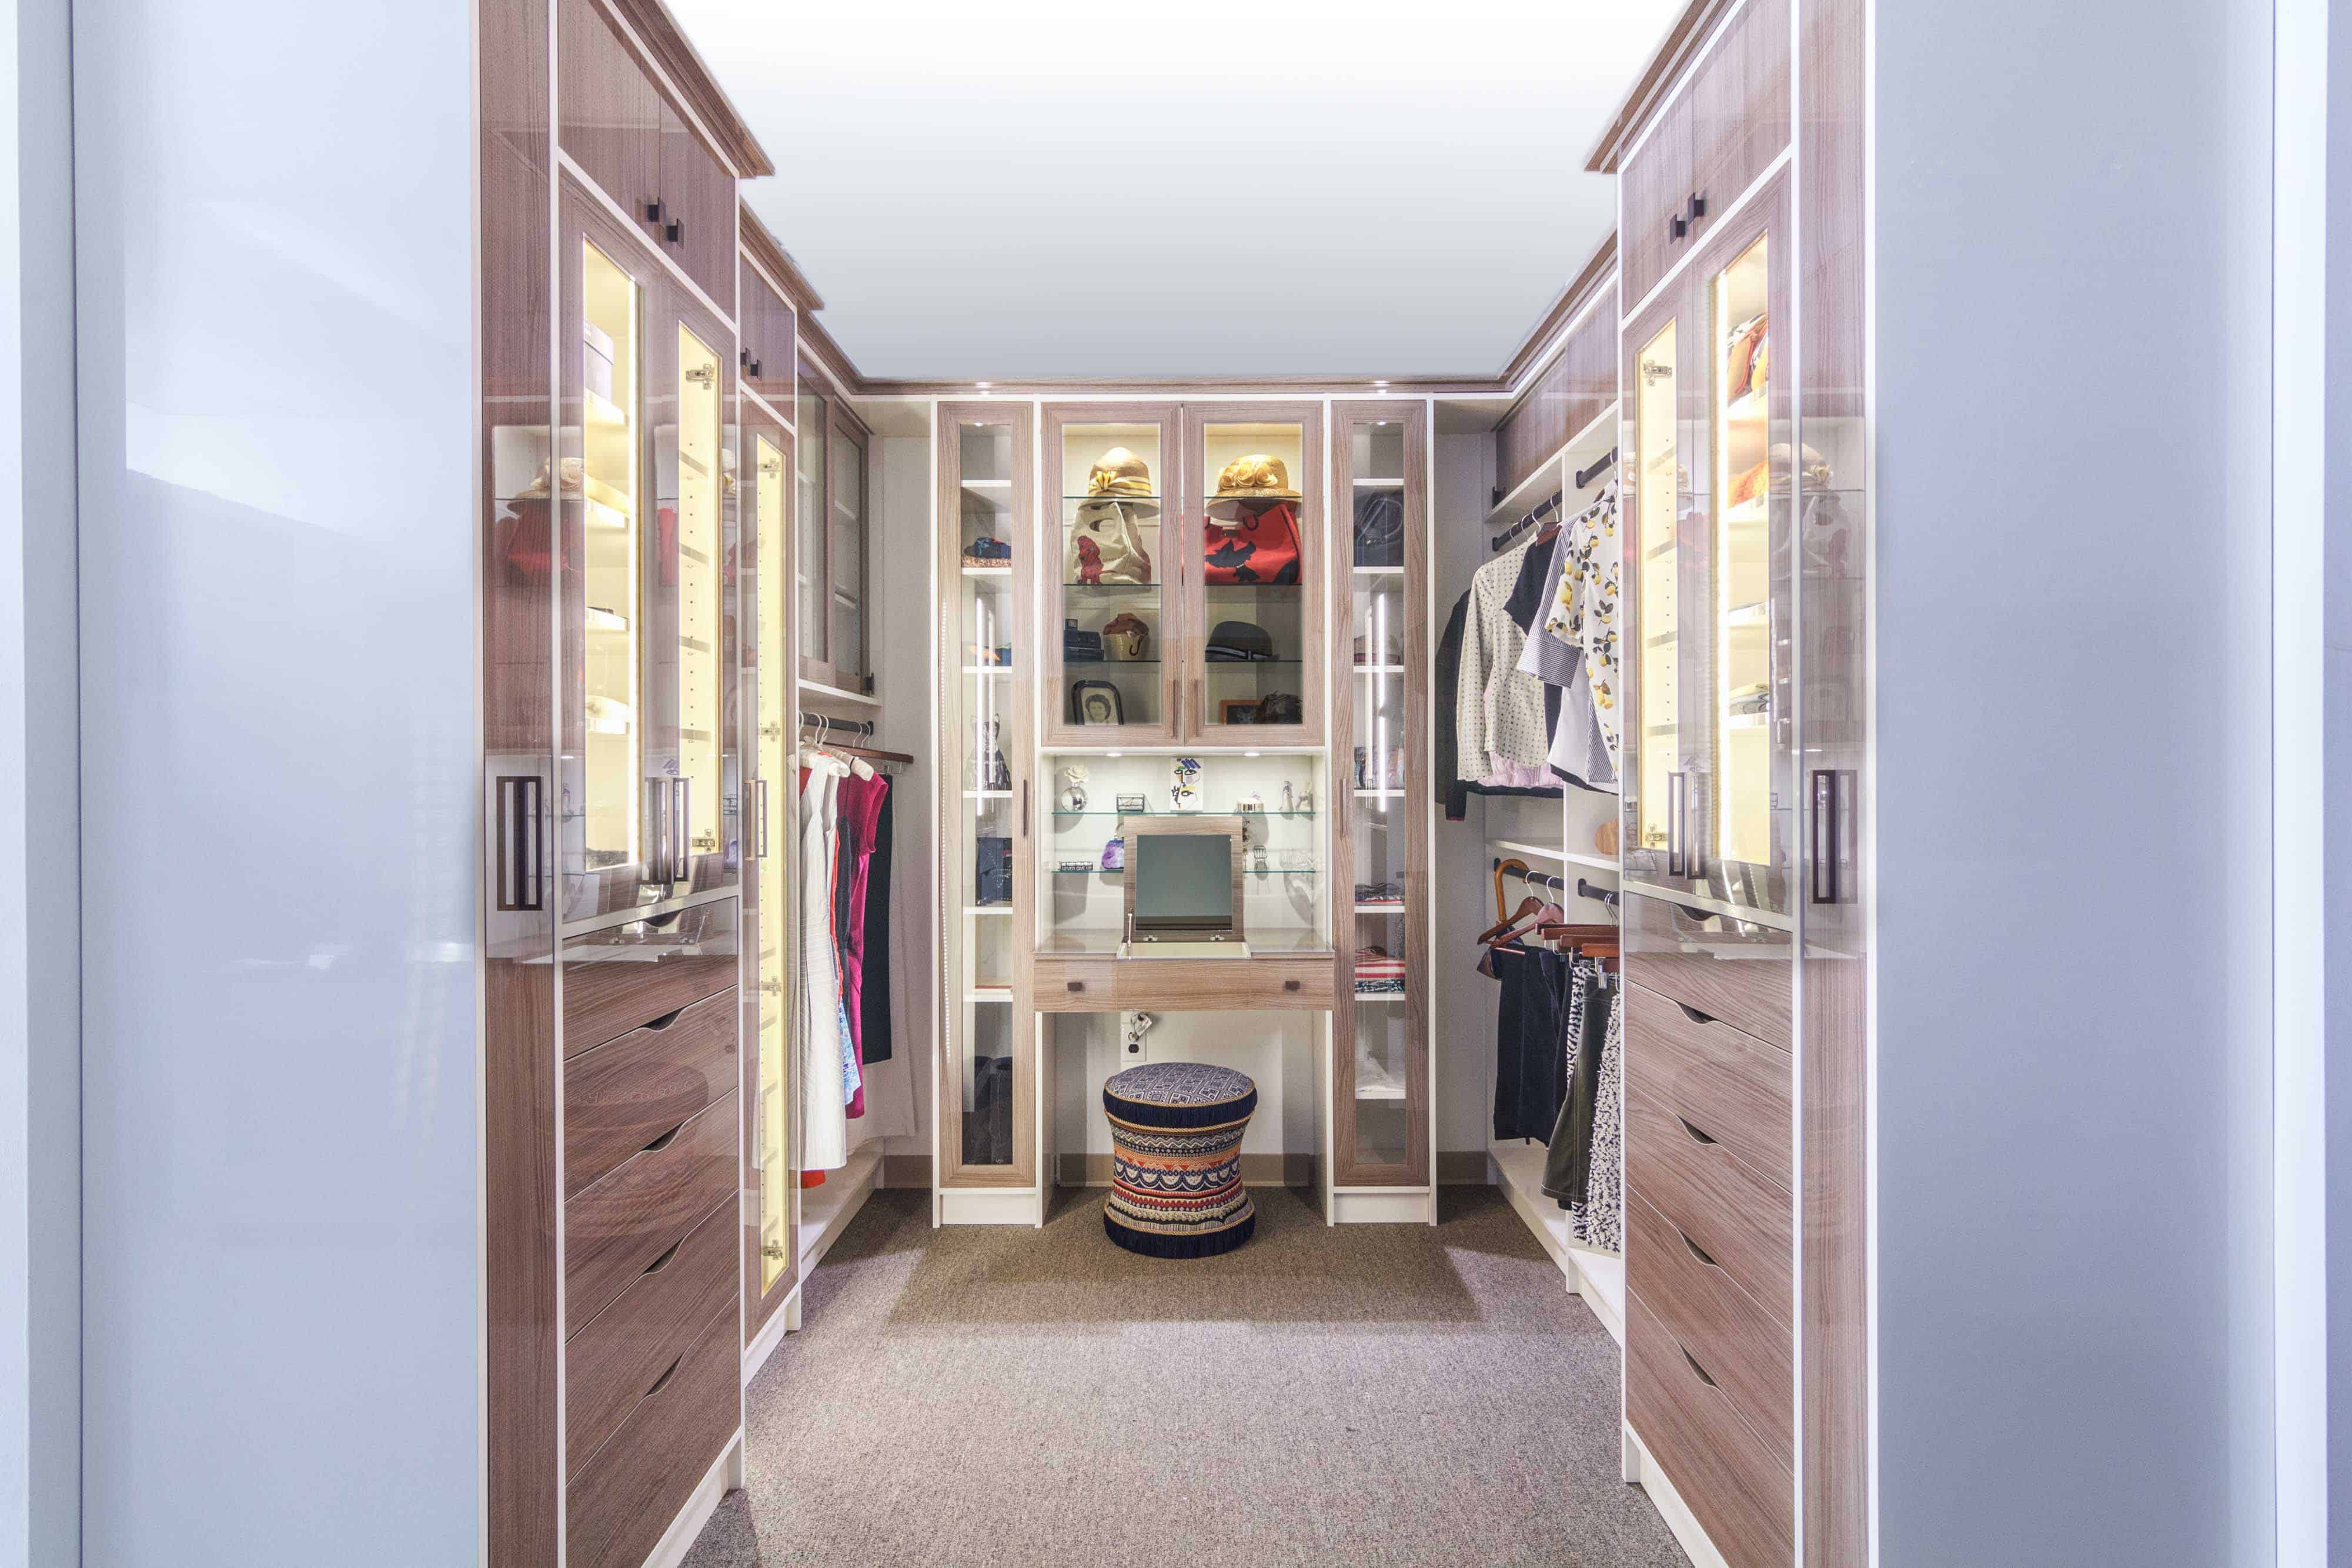 This closet bedroom features a white and glossy wood finished cabinetry set on a carpet flooring. The white walls and ceiling add style to the room.